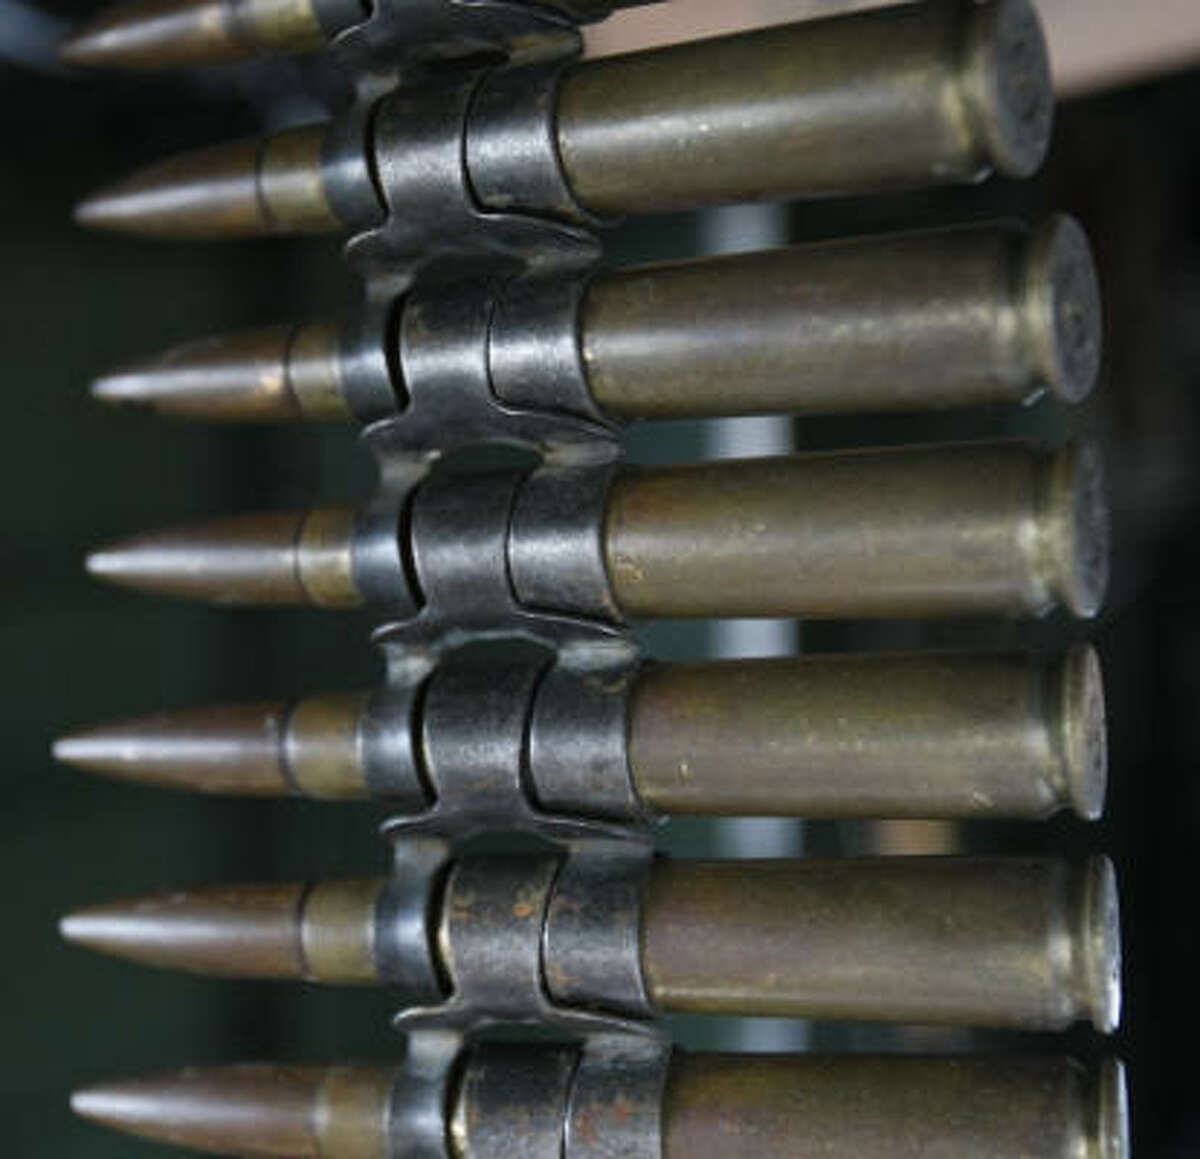 Displayed on a B-25 bomber fighter plane is 50-caliber ammunition for machine guns.